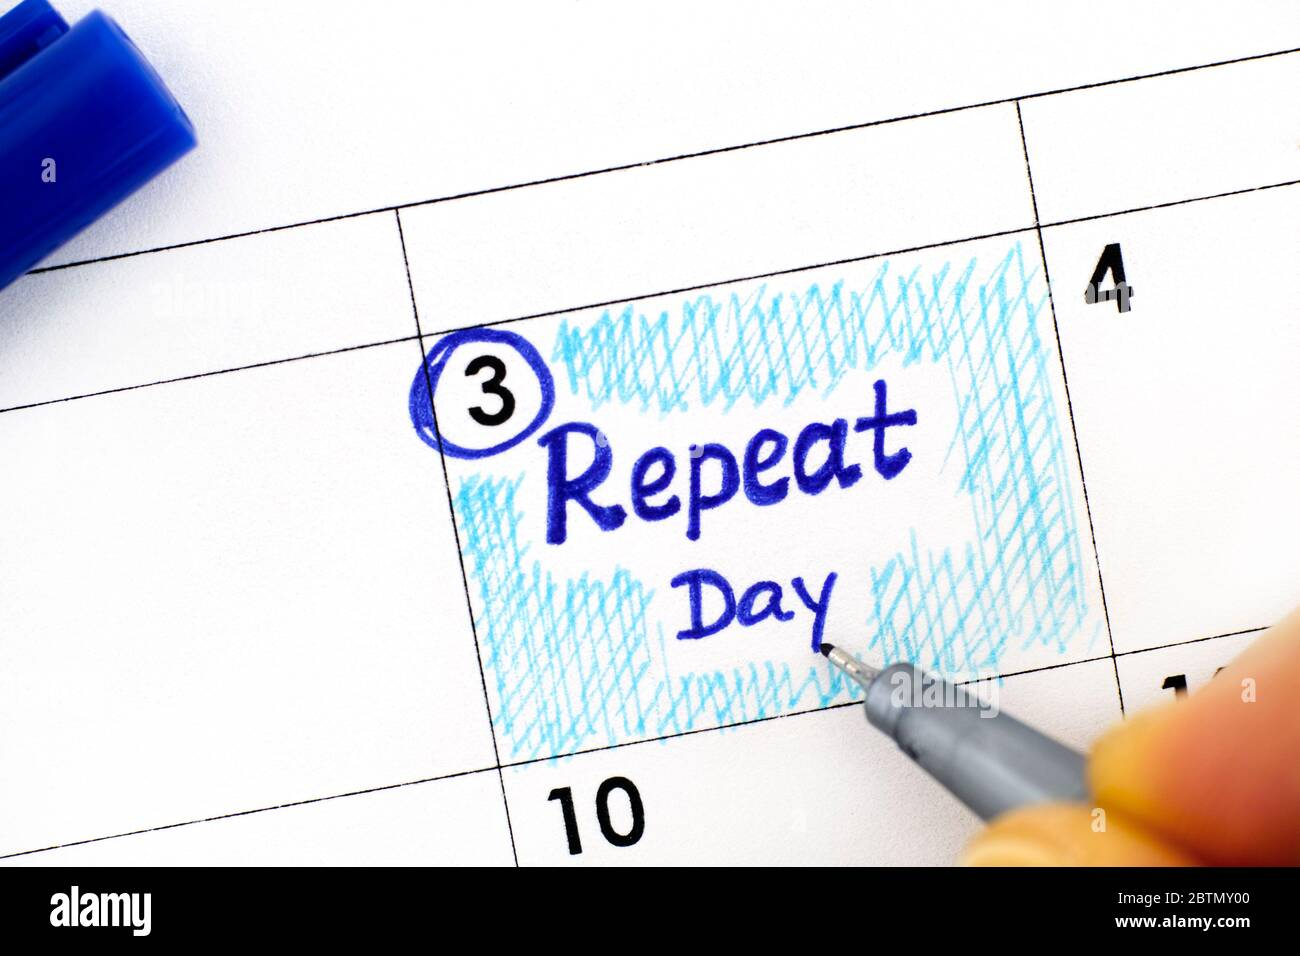 Woman fingers with pen writing reminder Repeat Day in calendar. June 03. Stock Photo